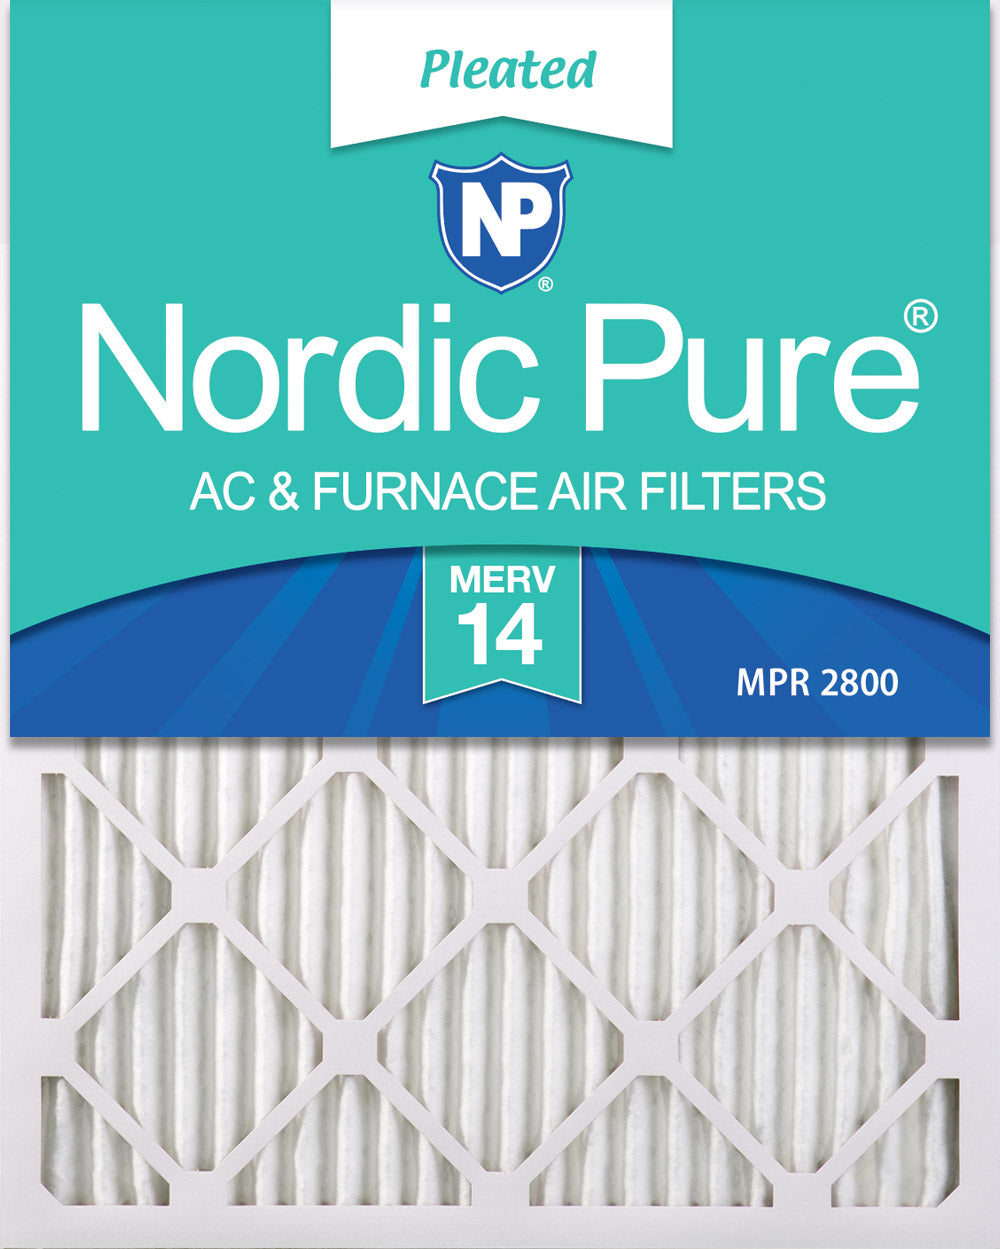 20x24x1 Pleated MERV 14 Air Filters 3 Pack